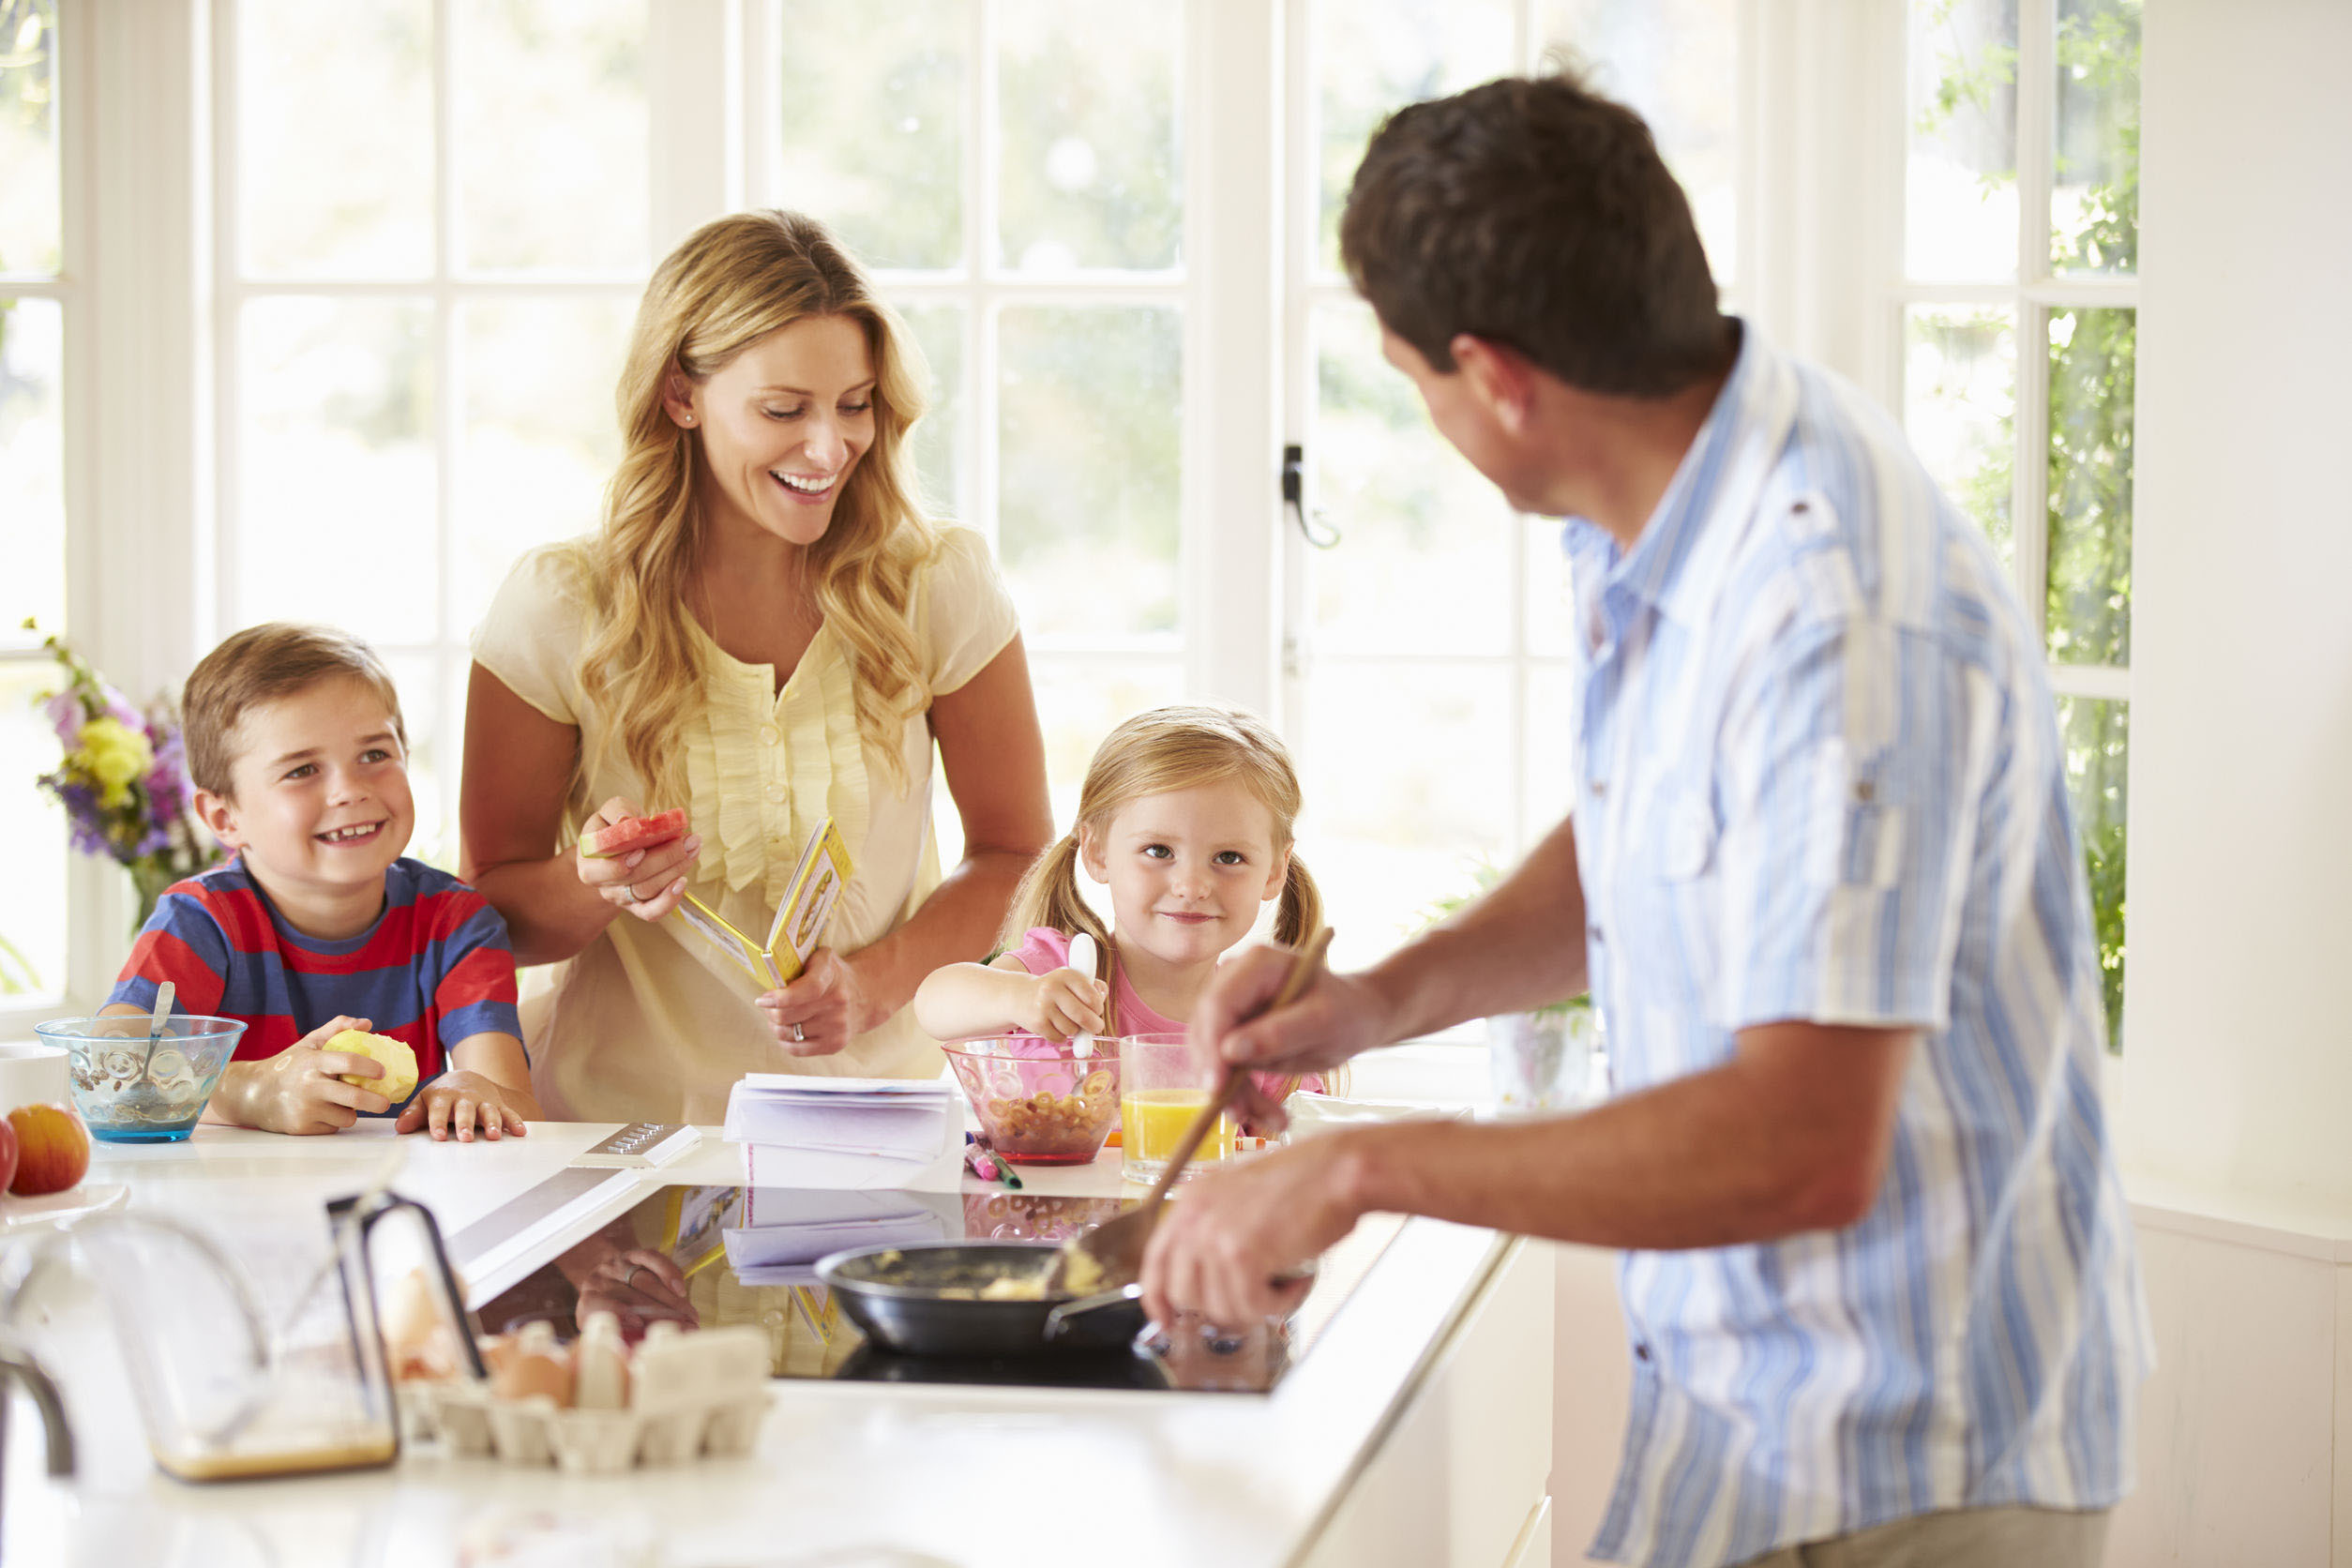 photo of a family cooking breakfast in their home